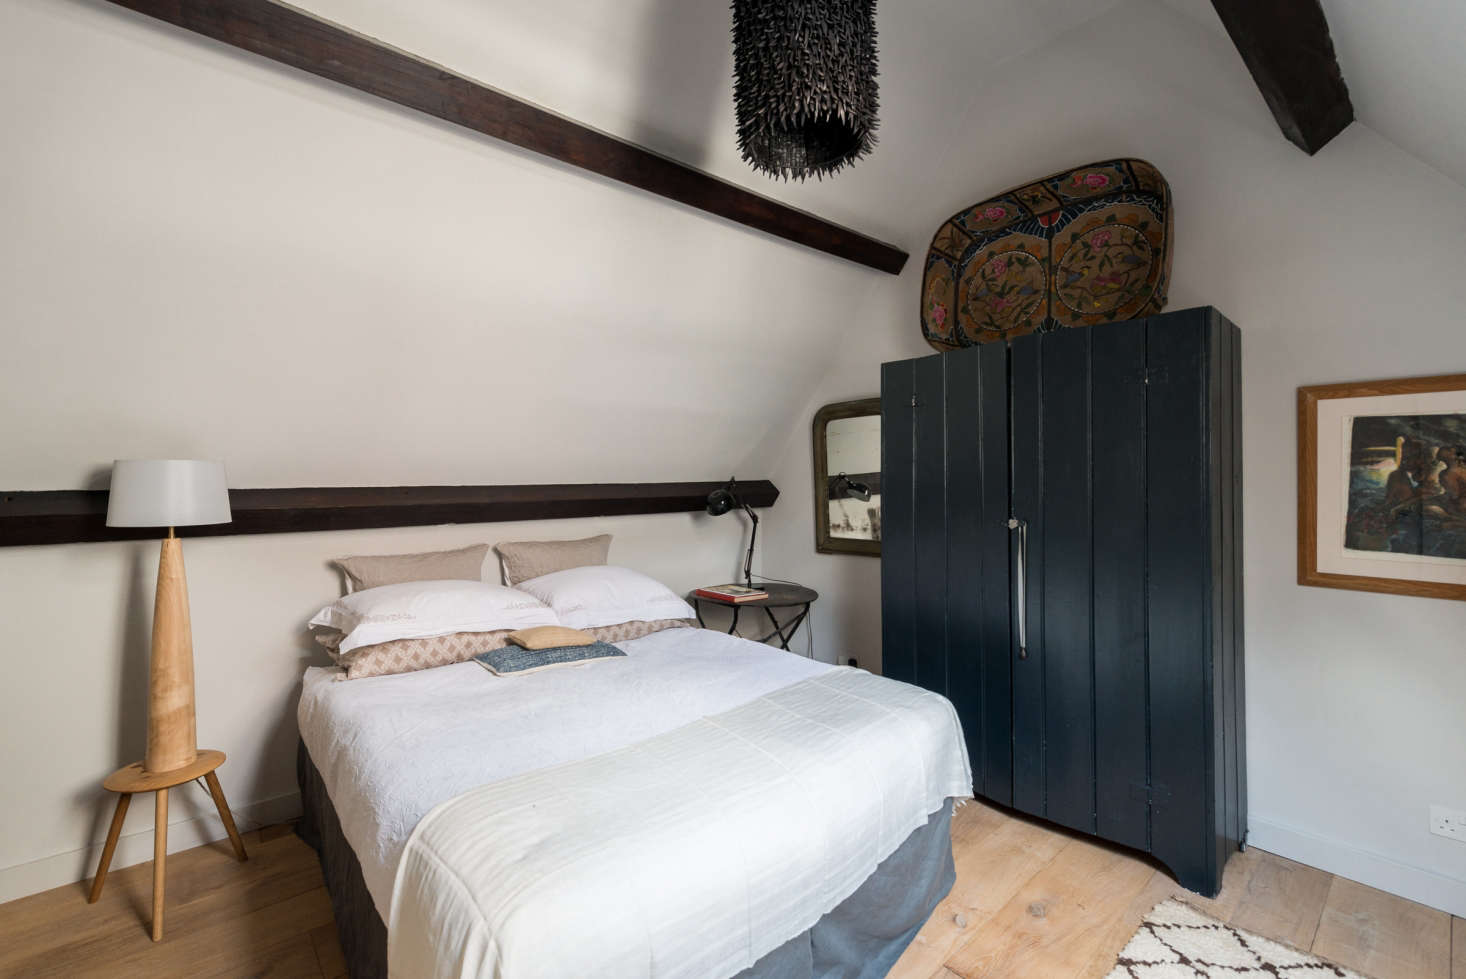 Mix-and-match bedside table lamps do the trick. SeeSteal This Look: An Artful Attic Bedroom in London for more.